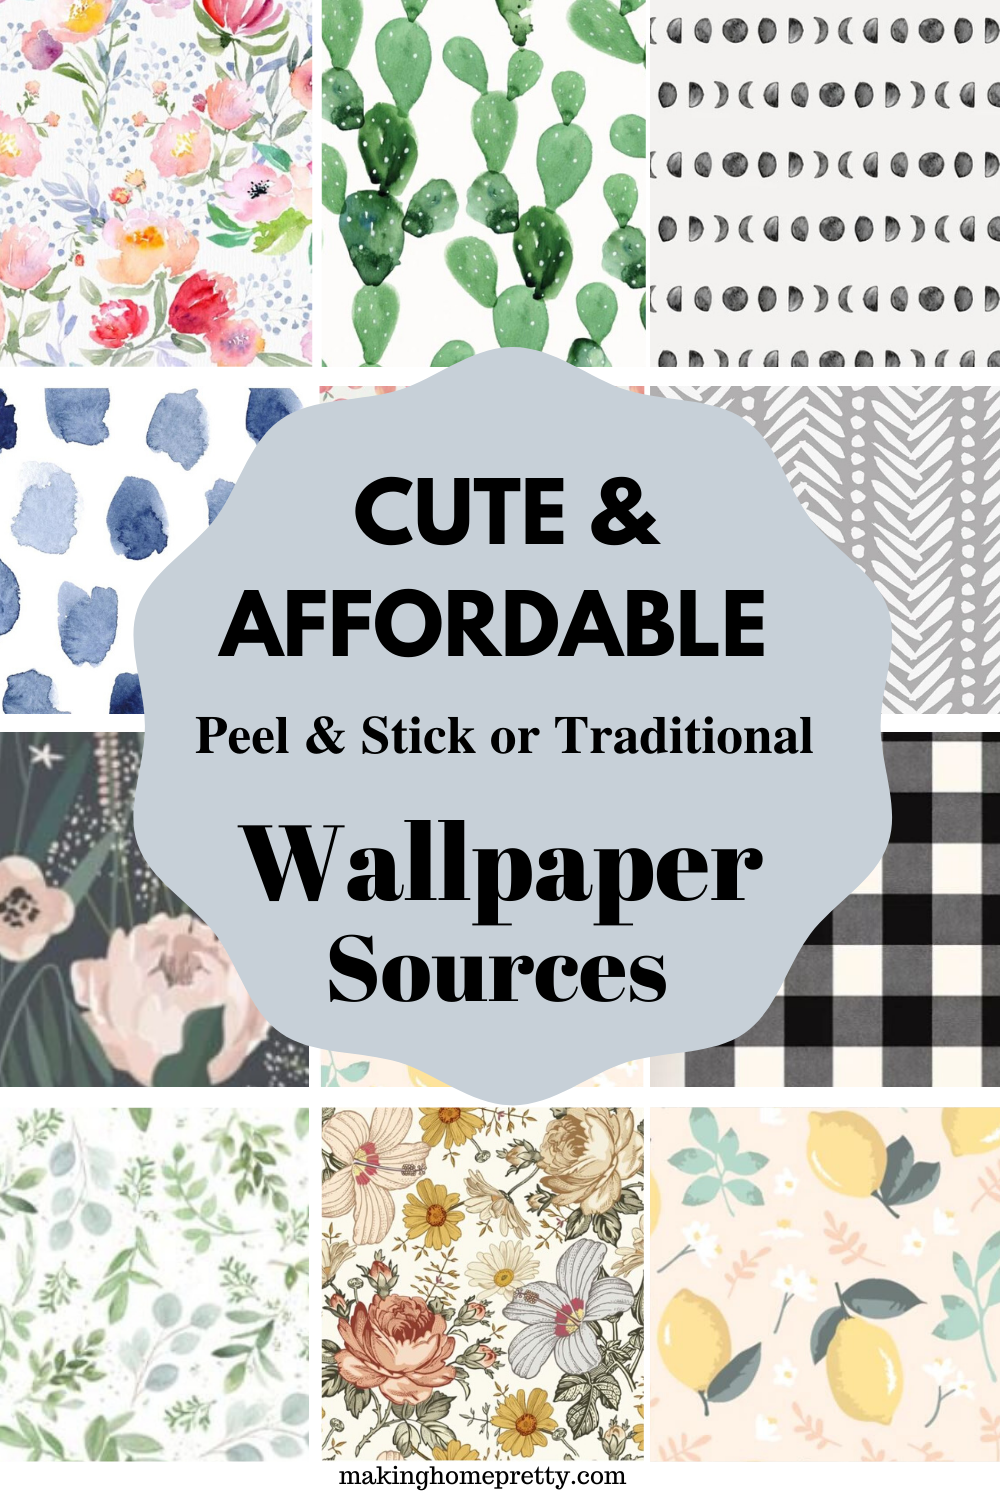 Best Places To Buy Affordable Wallpaper Affordable Wallpaper Stick On Wallpaper Temporary Wallpaper